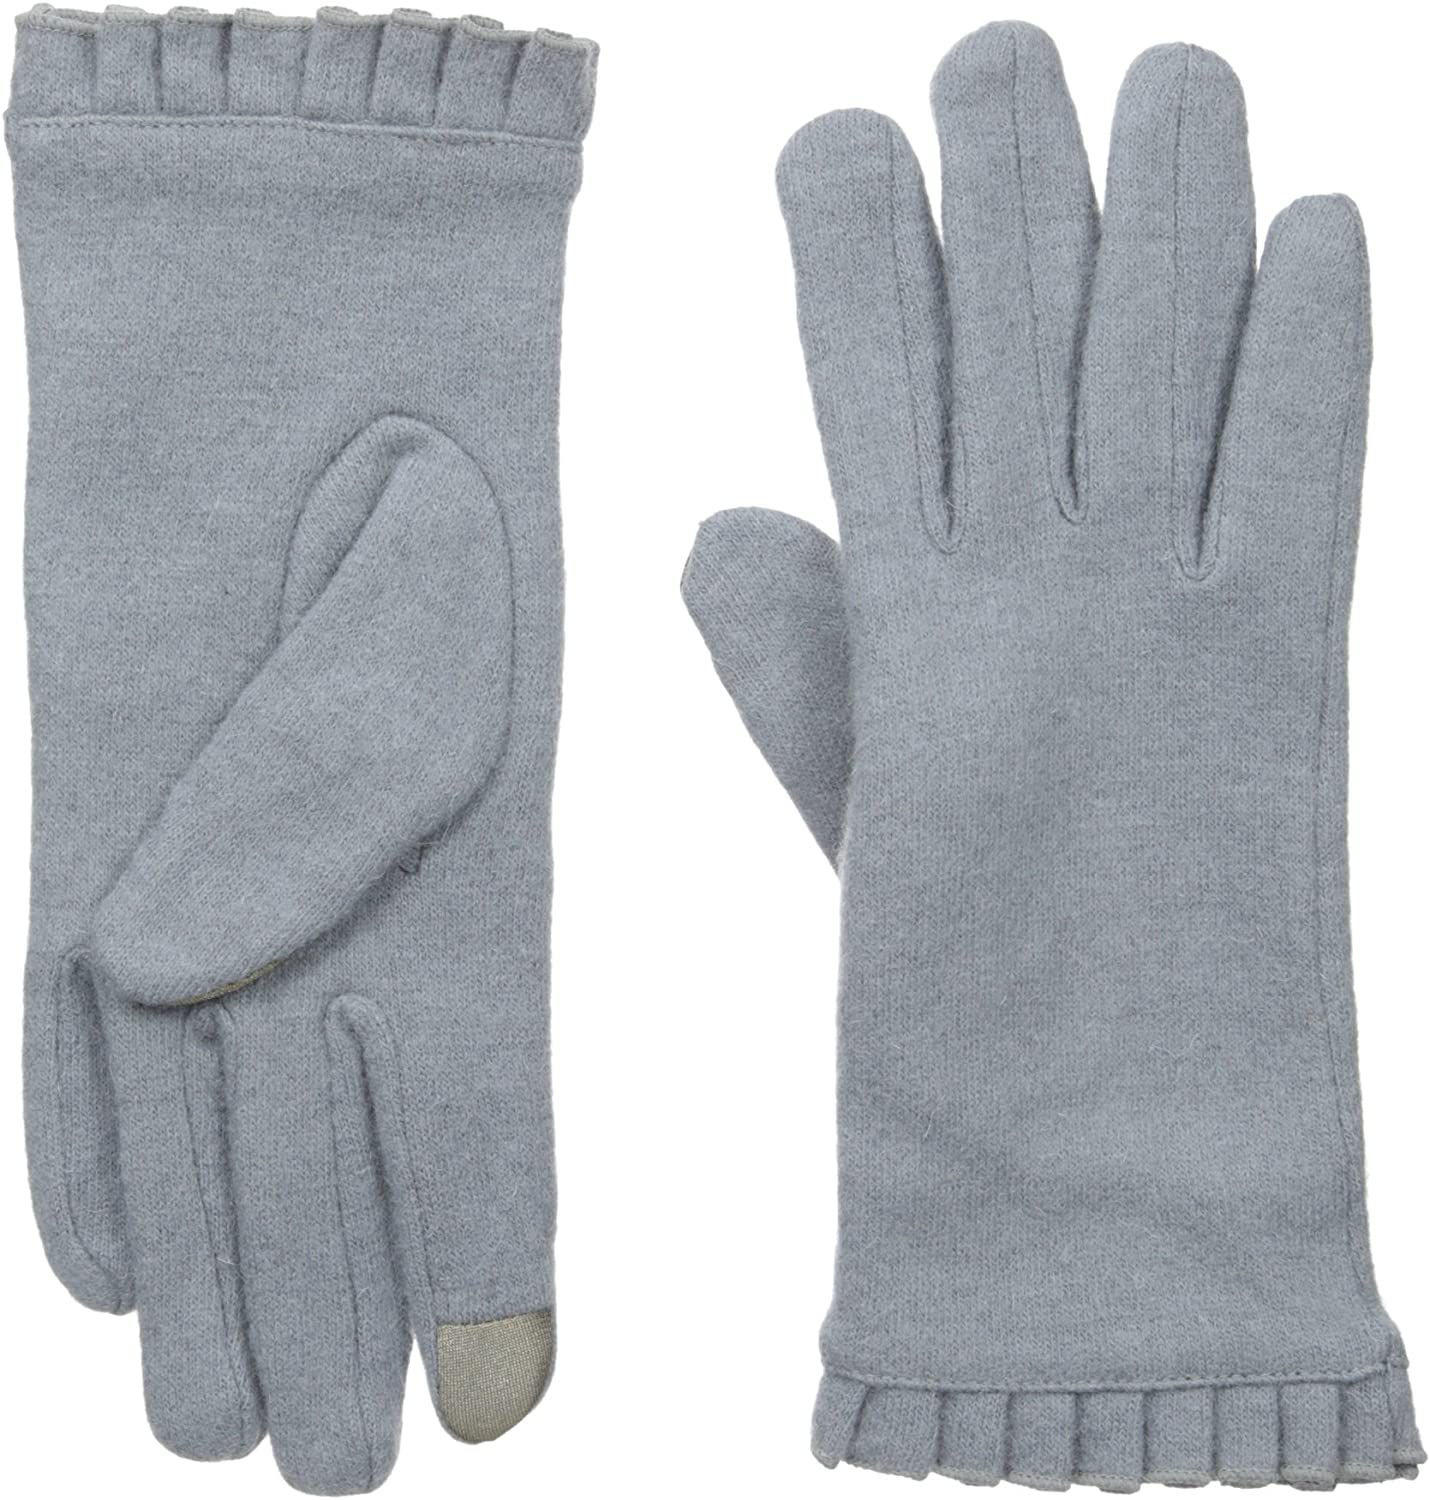 Gloves International Women's Wool-Blend Gloves